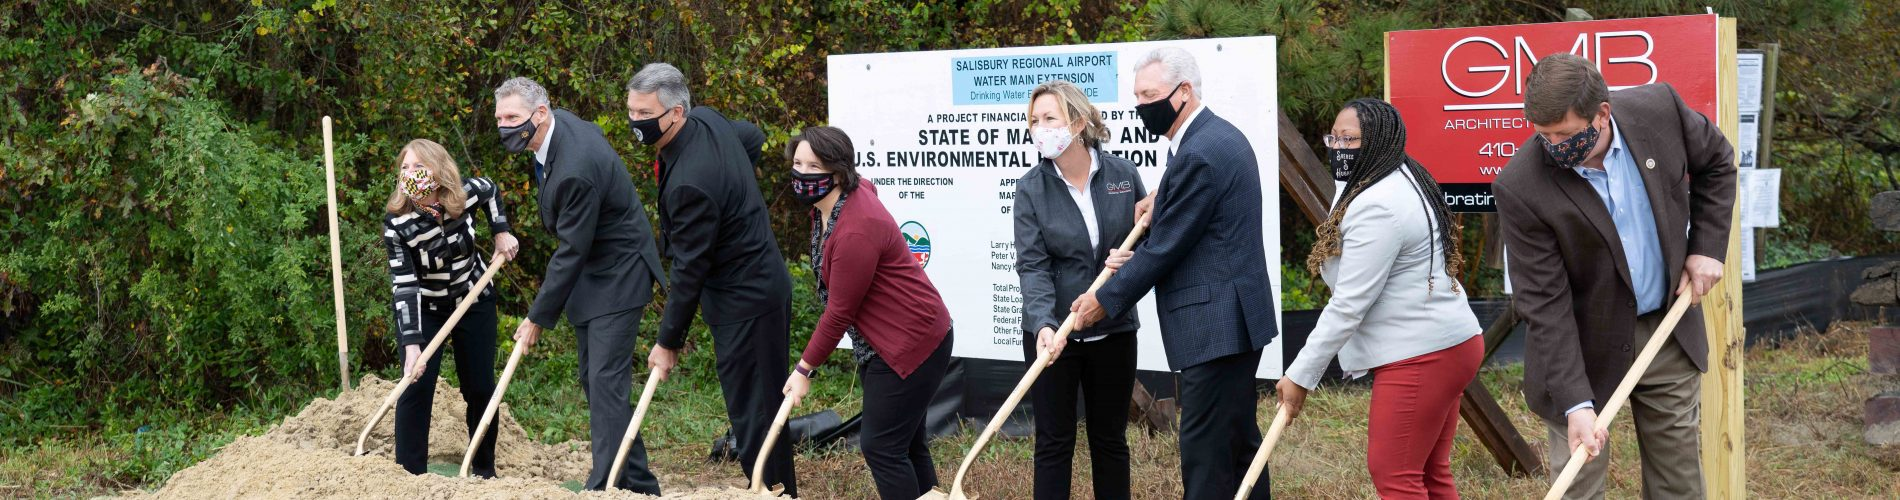 A photo of water main extension ground breaking